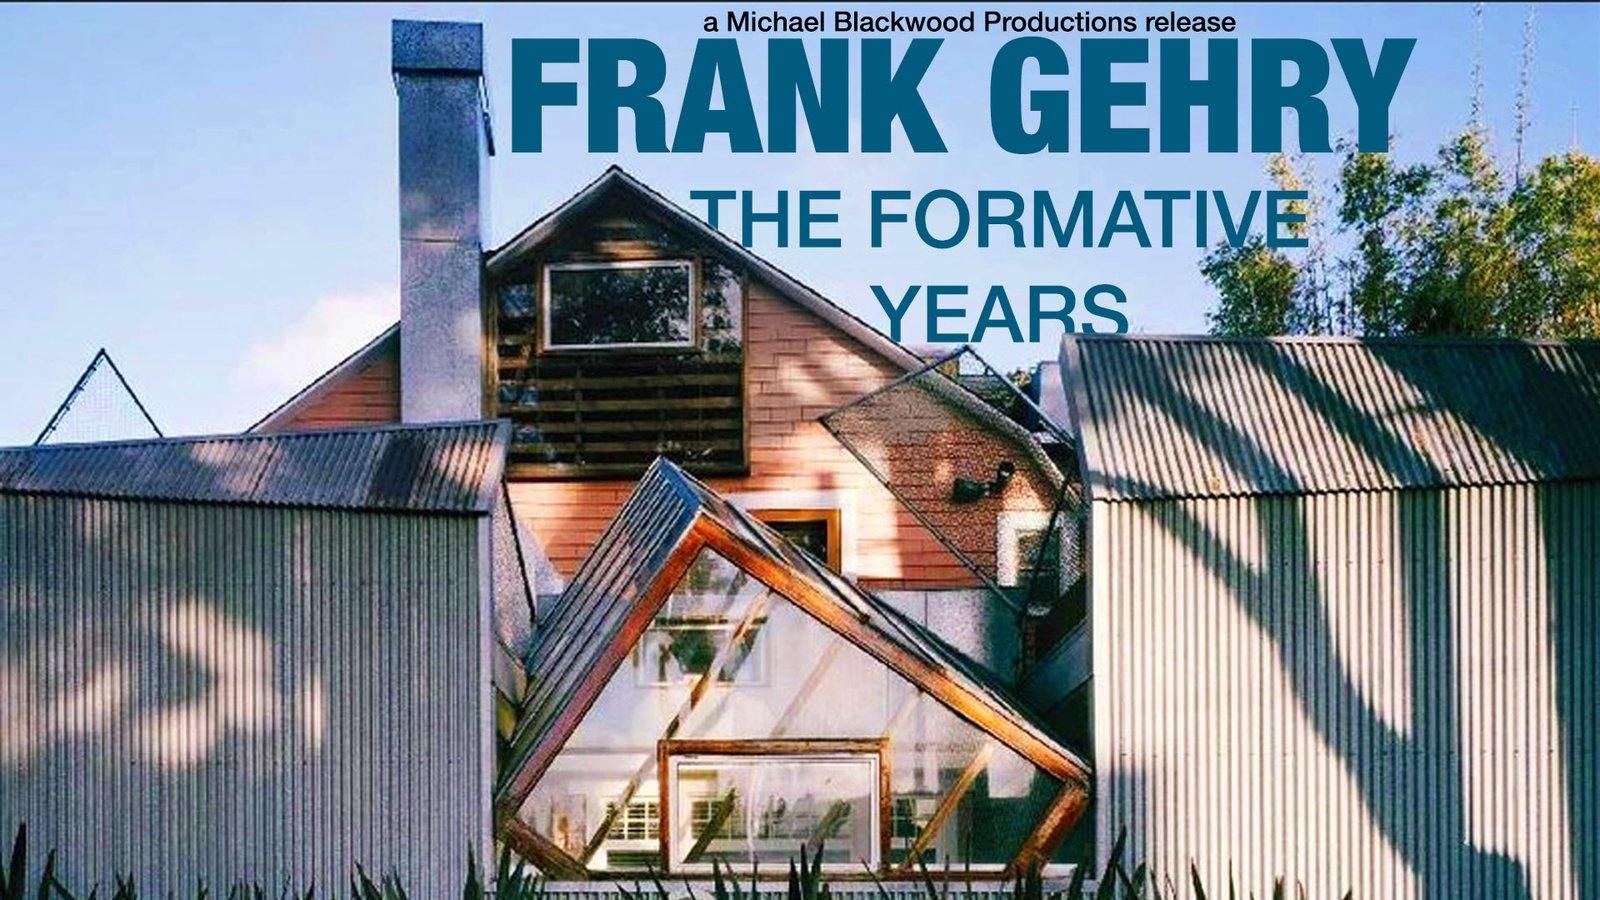 Frank Gehry - The Formative Years